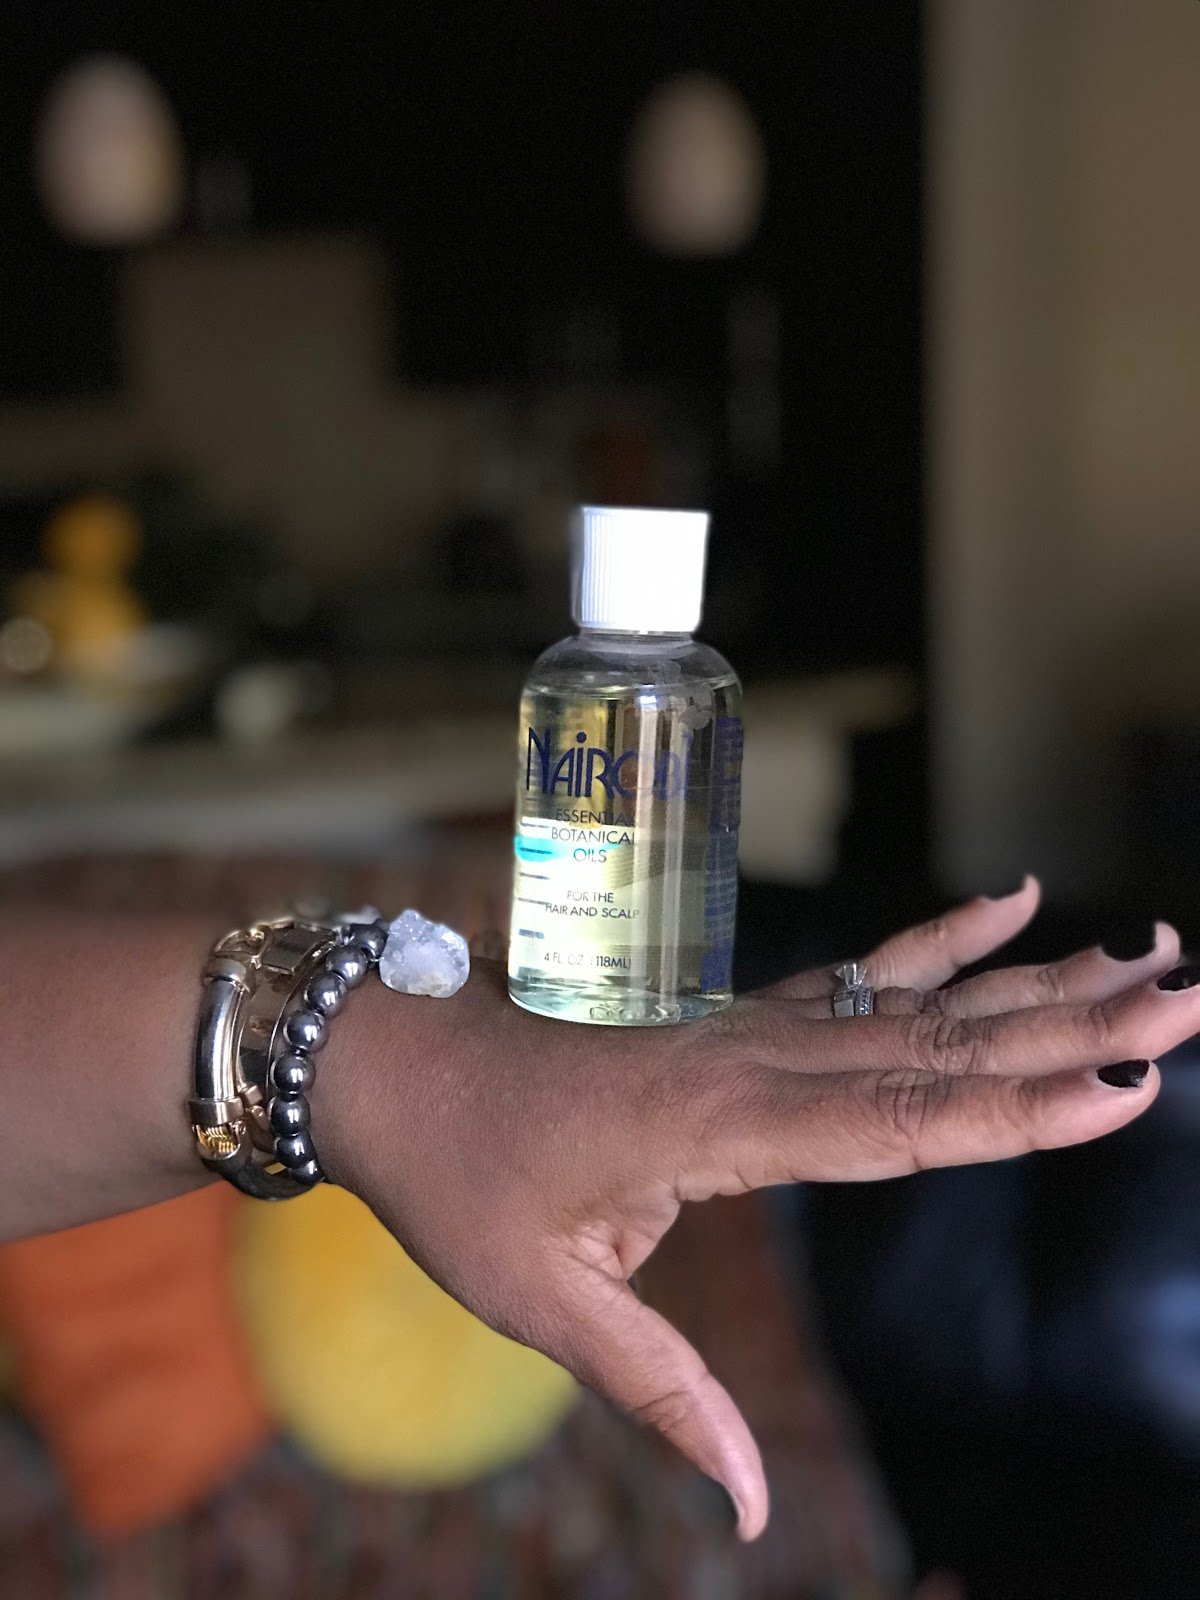 Woman sharing Nairobi hair oil as a way to help keep hair moisturized doing the summer. #lookinggood